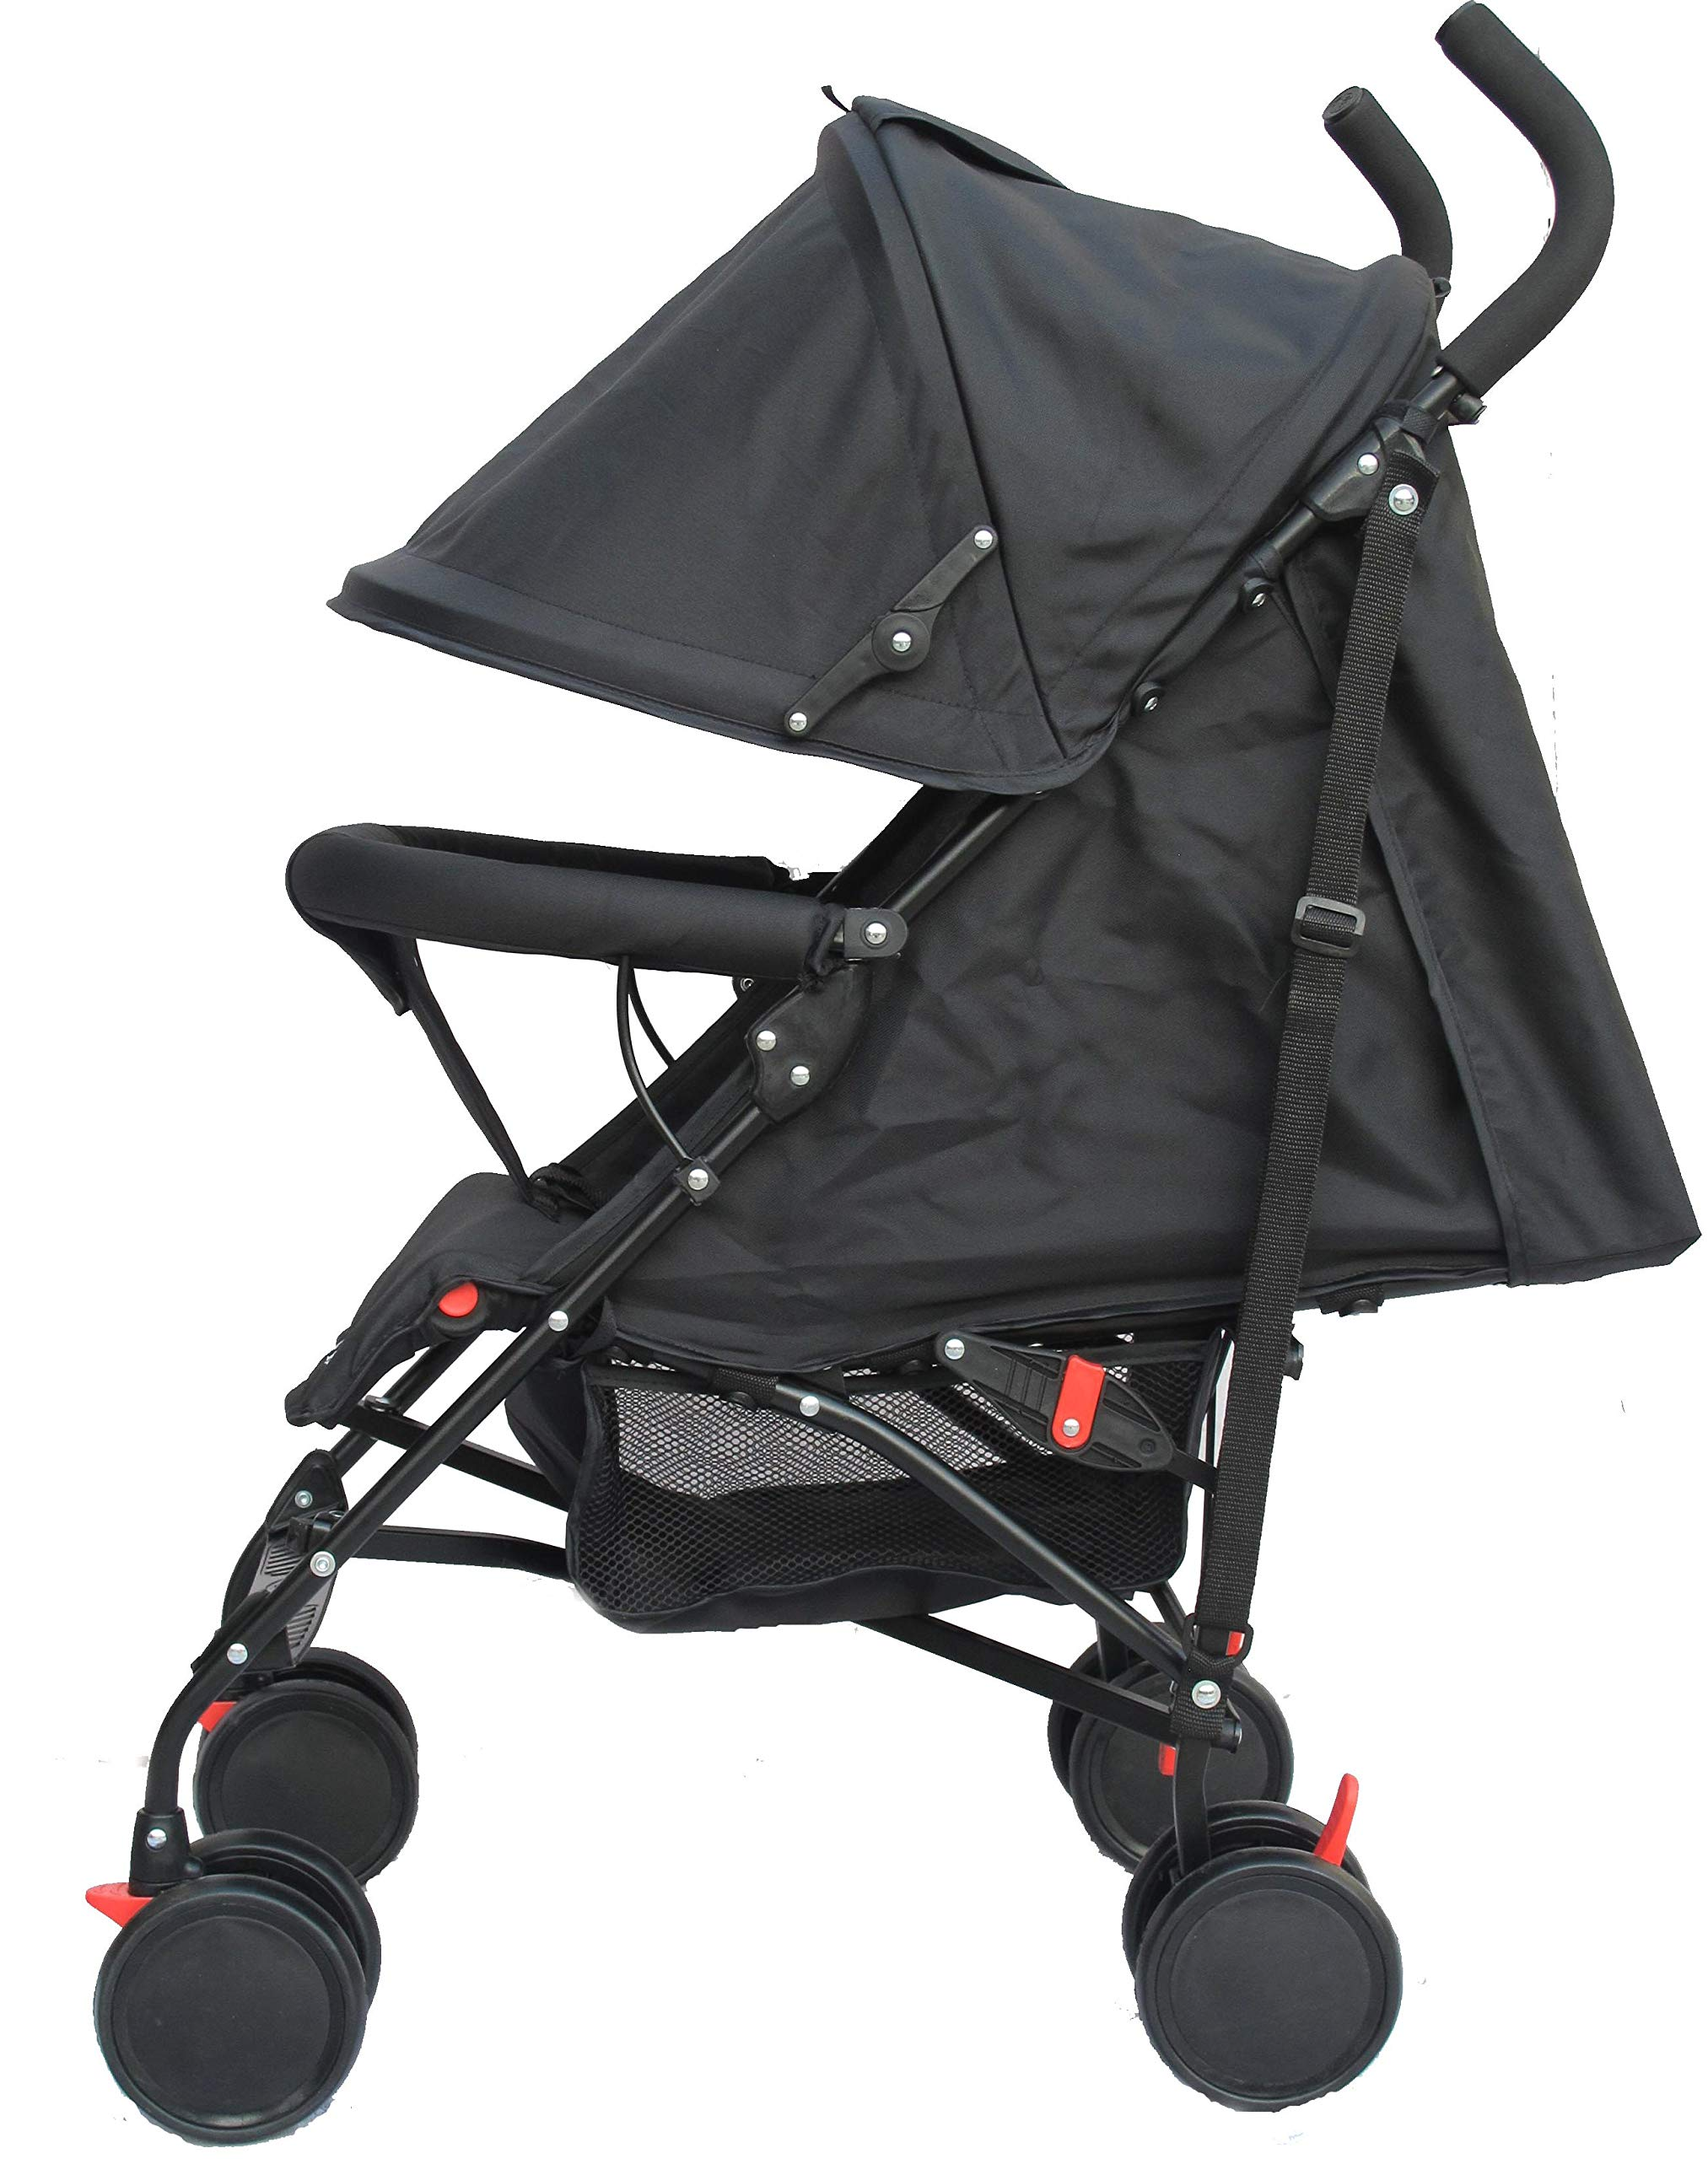 Stroller for Kids Lightweight Buggy Easy Fold Travel Stroller Buggy Foldable for Airplane Travel Cabin Size(Black) Little Bambino ✨Extendable upf 50+ sun canopy and built-in sun visor ✨EASY USAGE - One-hand foldable buggy makes taking your baby for travels or walks a simple pleasure. It could stand on its own so you could take care of your baby with less things to worry about. ✨ADJUSTABLE BACKREST - Travel stroller backrest can be adjusted. Suitable for children from 0 to 36 months 3